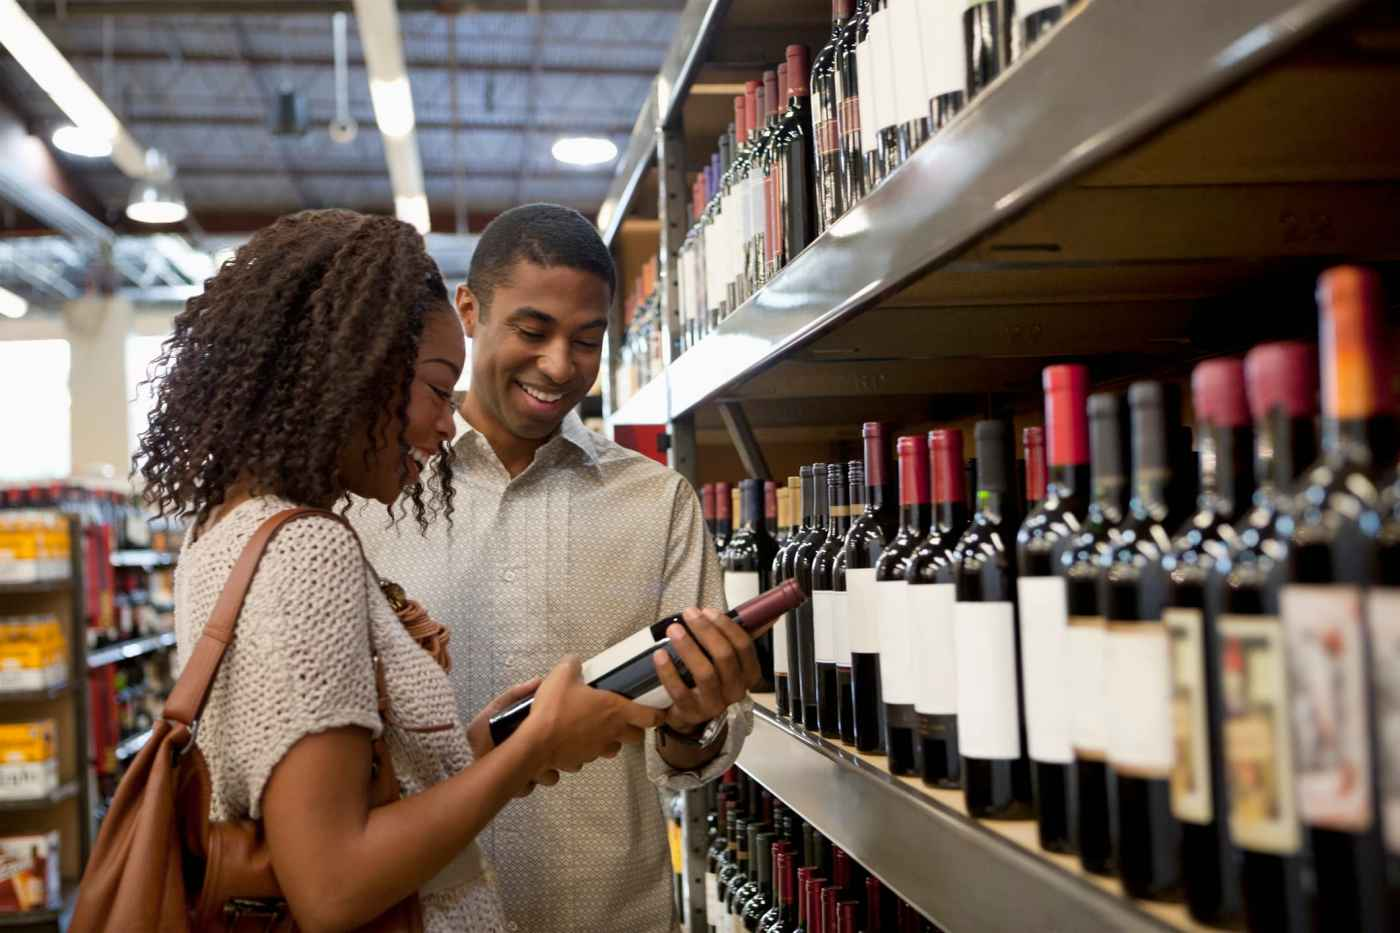 How to buy great wine without going broke